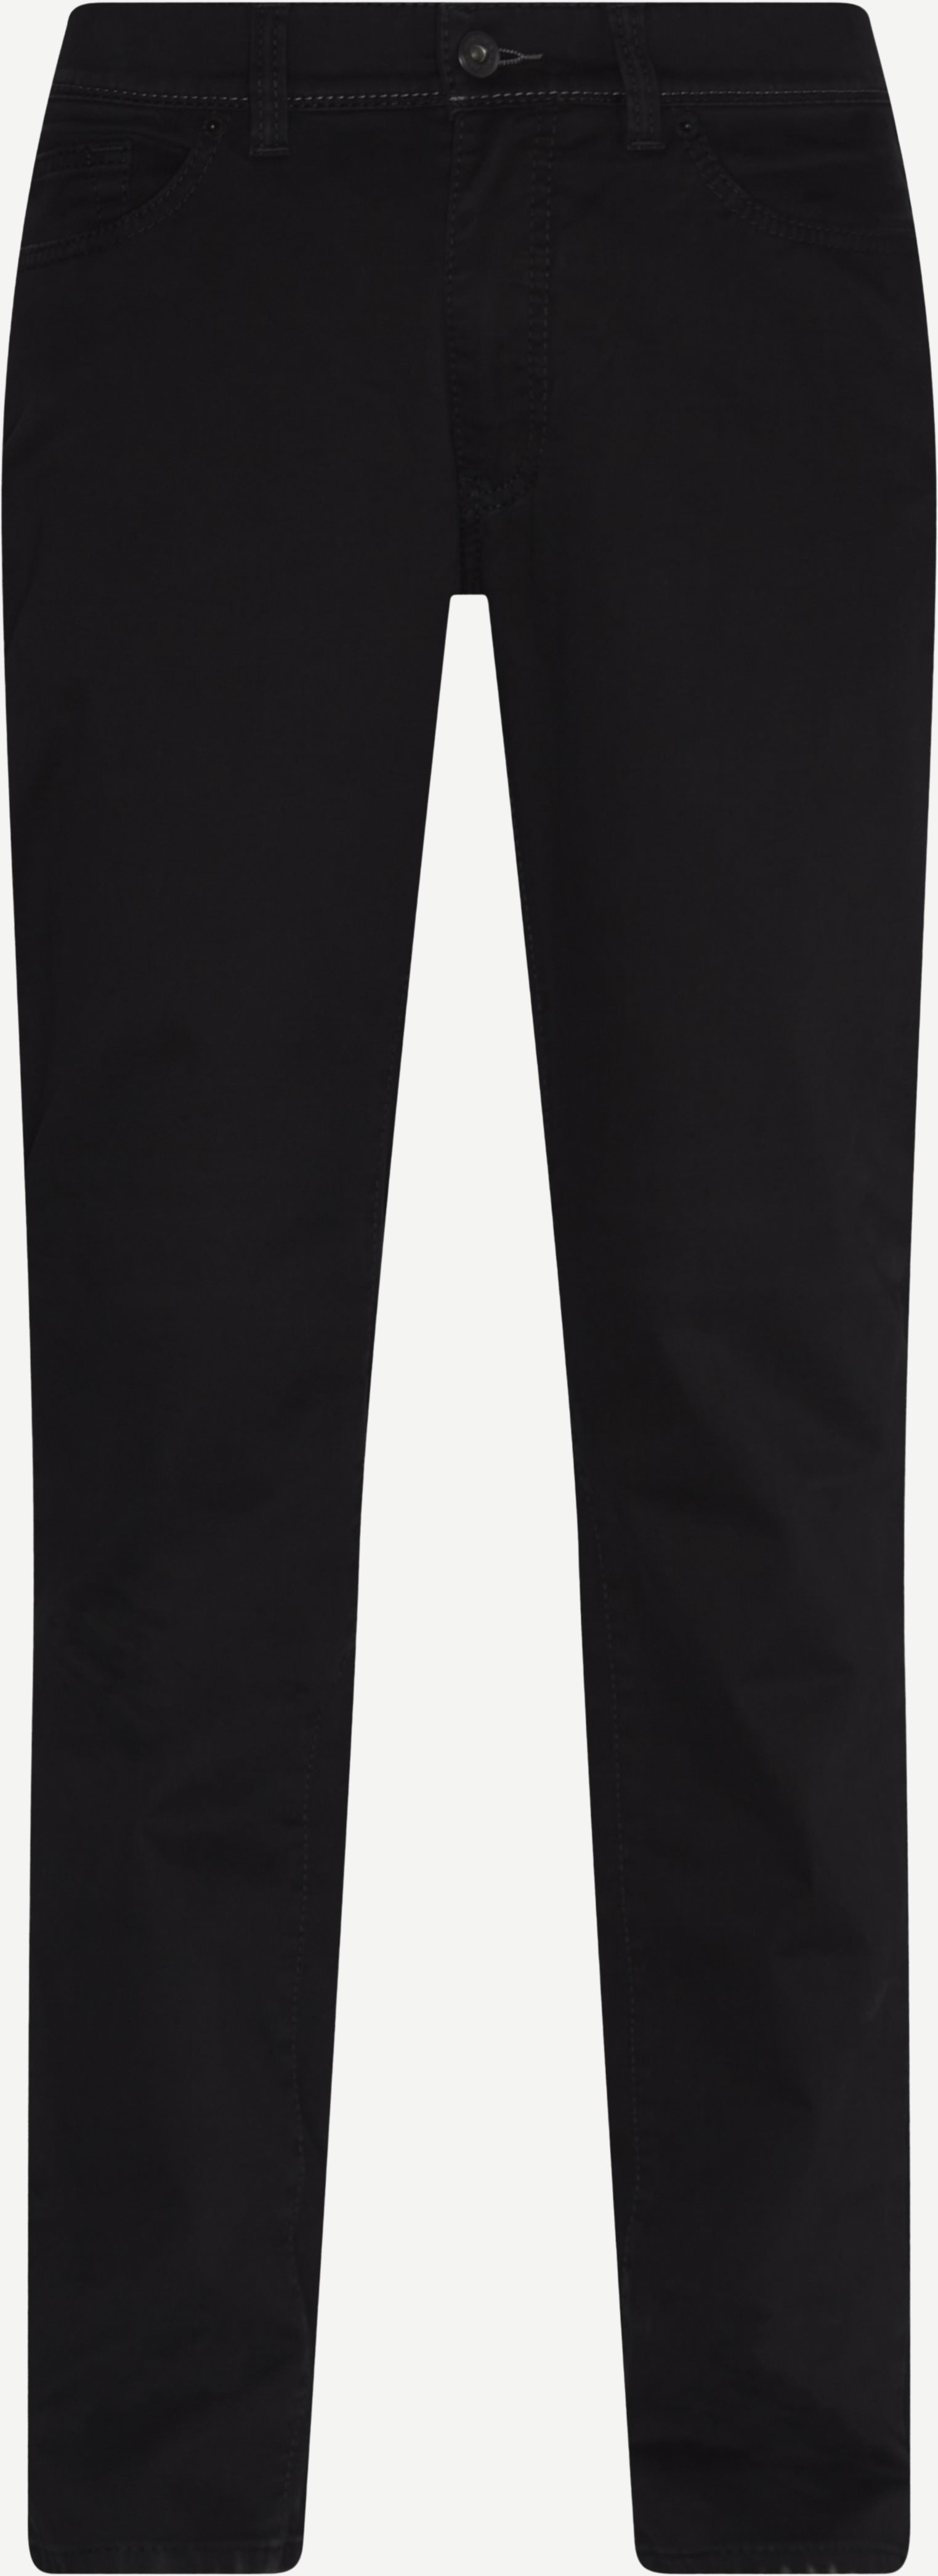 Cadiz Jeans - Jeans - Straight fit - Black